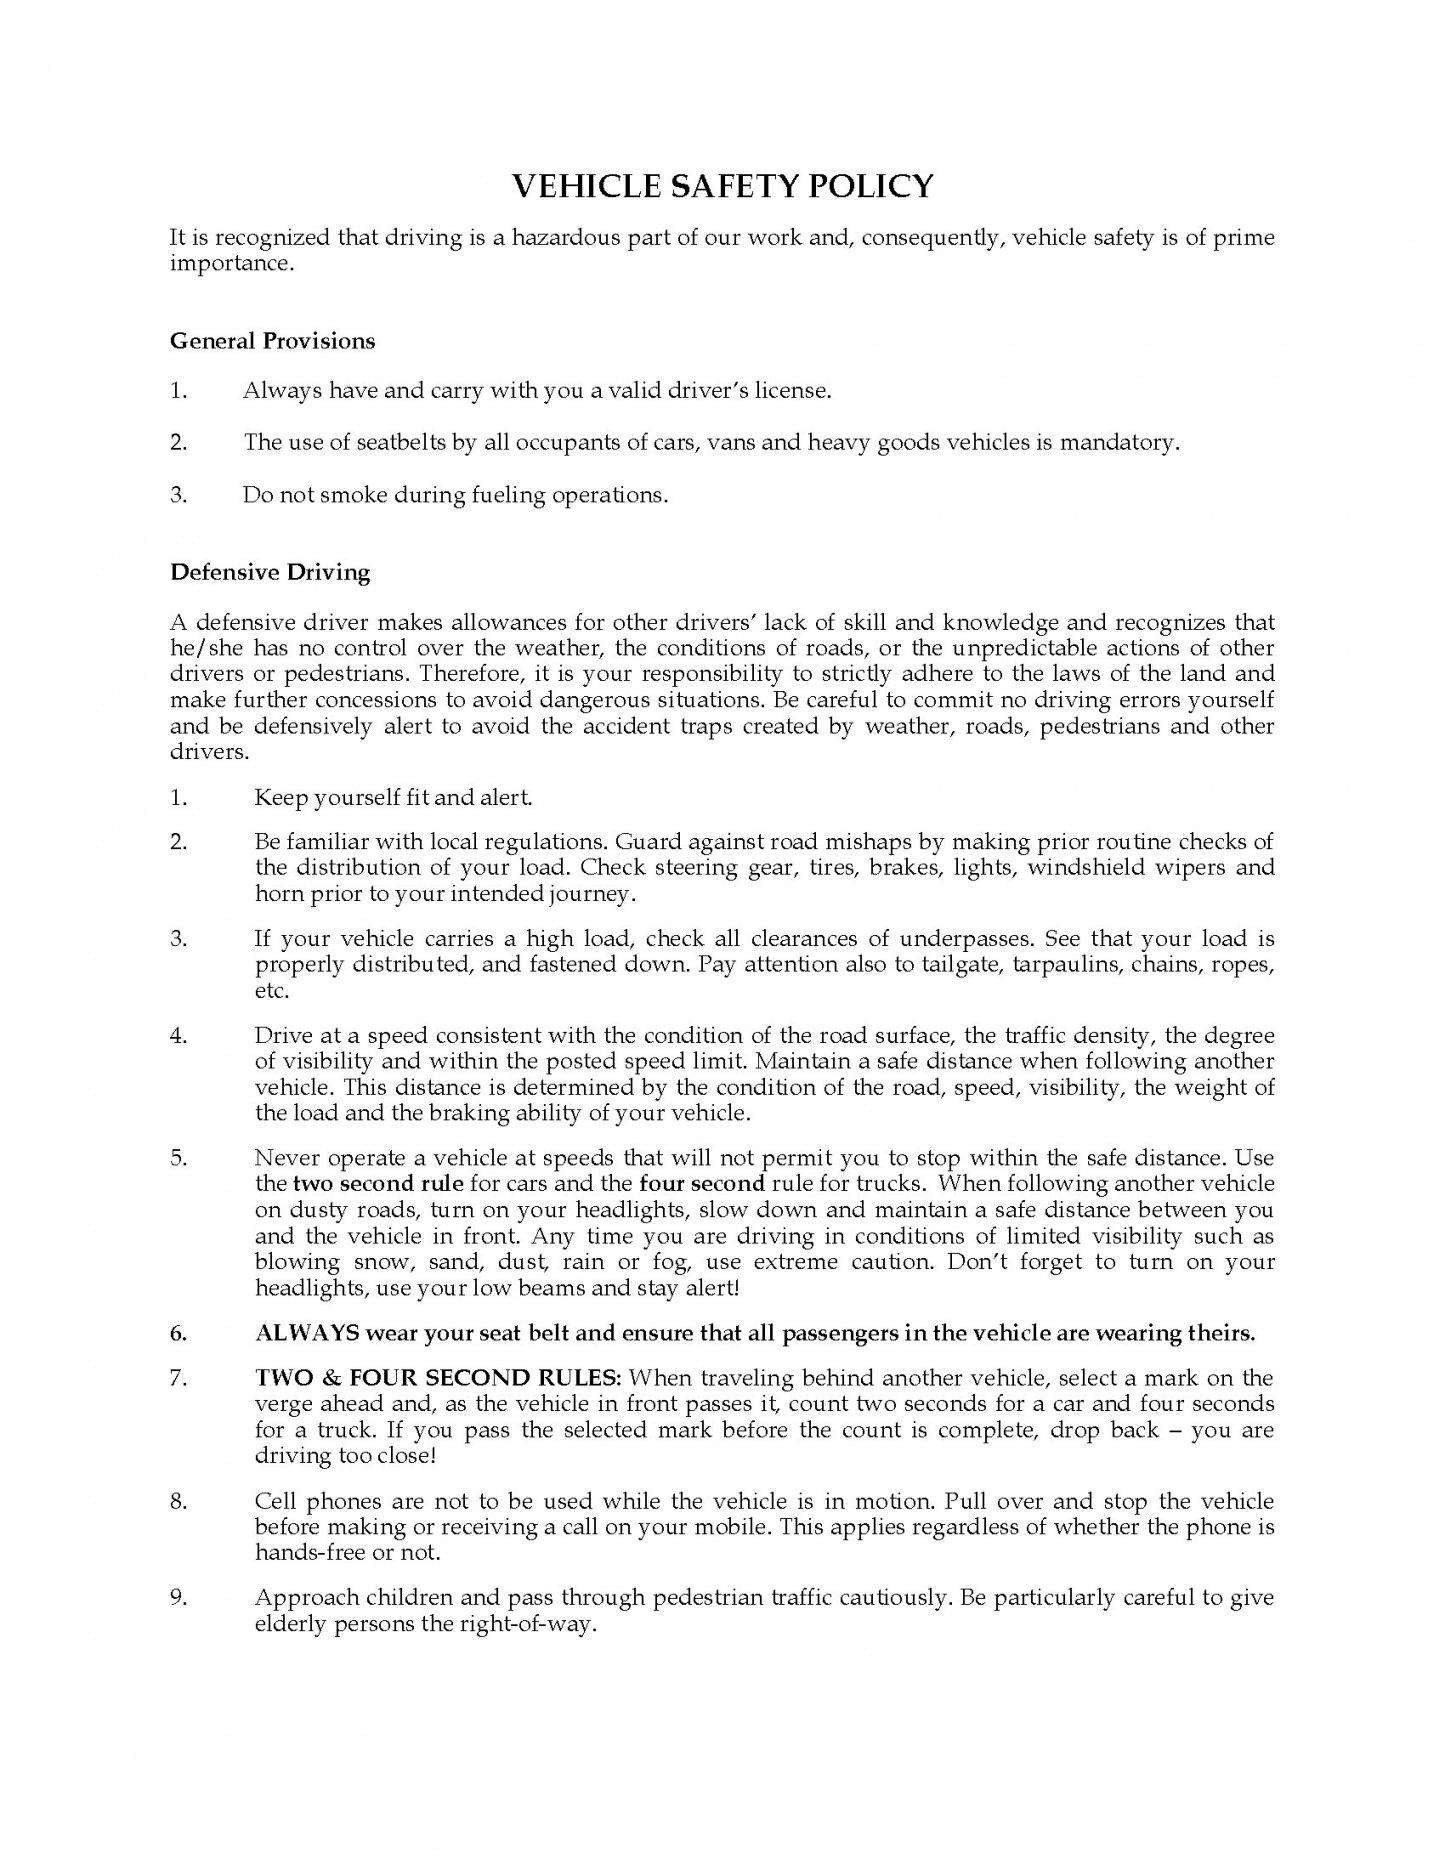 Professional Company Vehicle Policy Template  Example